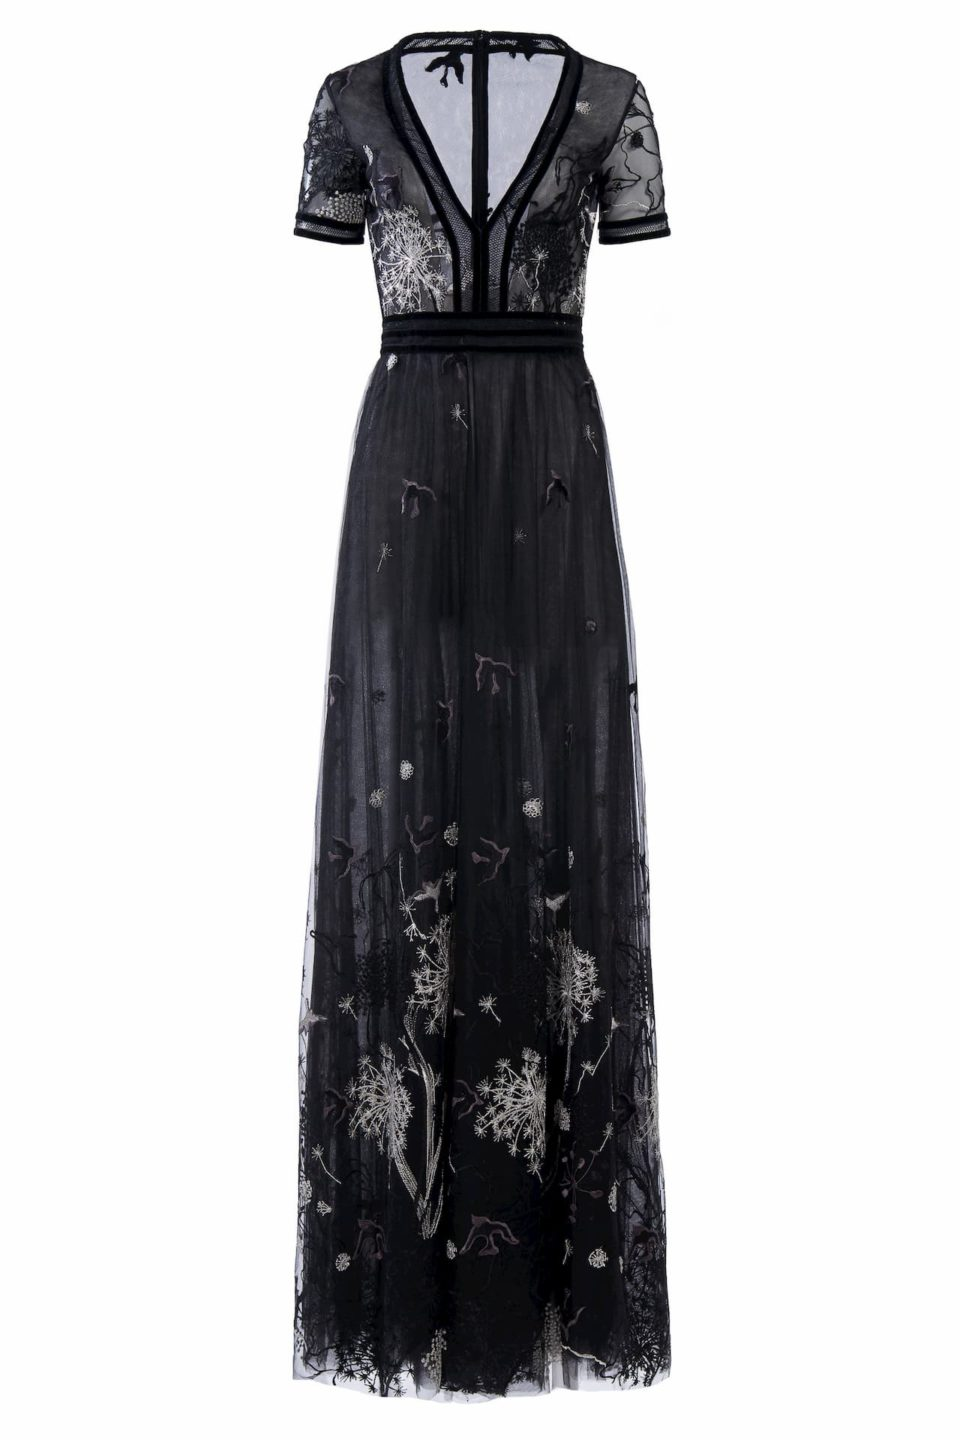 Noir Storytelling FW2036 black French Tulle Embroidered Cap-Sleeve Gown with Mesh Detail & Velvet Trim